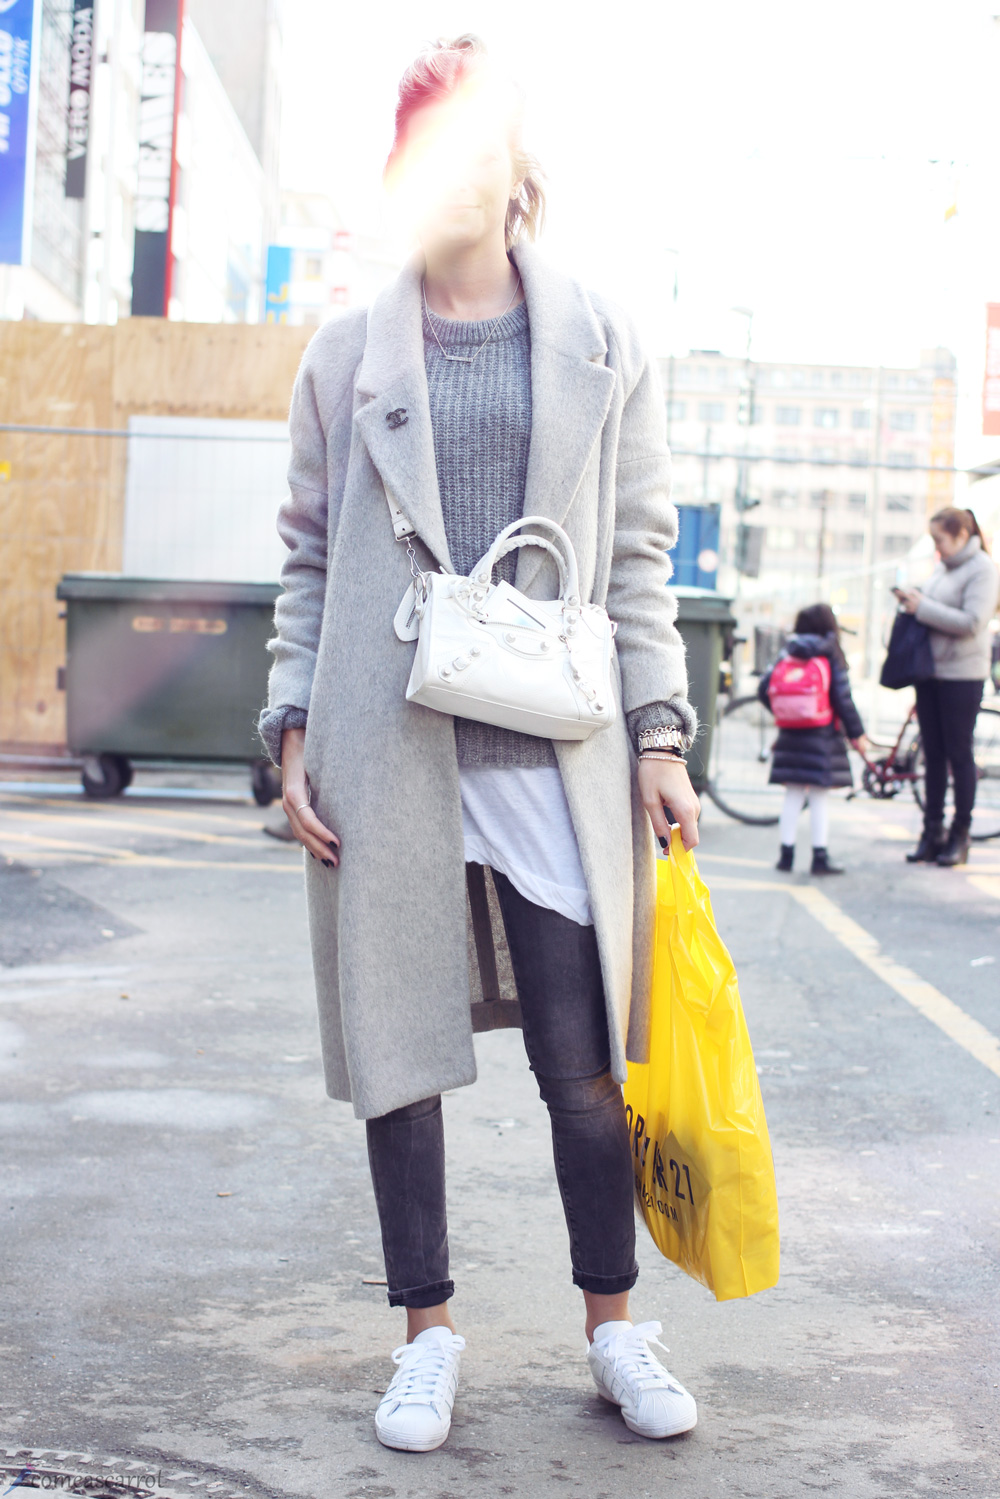 7ed369824a36 Streetstyle  Light shades of Chanel  Düsseldorf - Fashion blog from ...